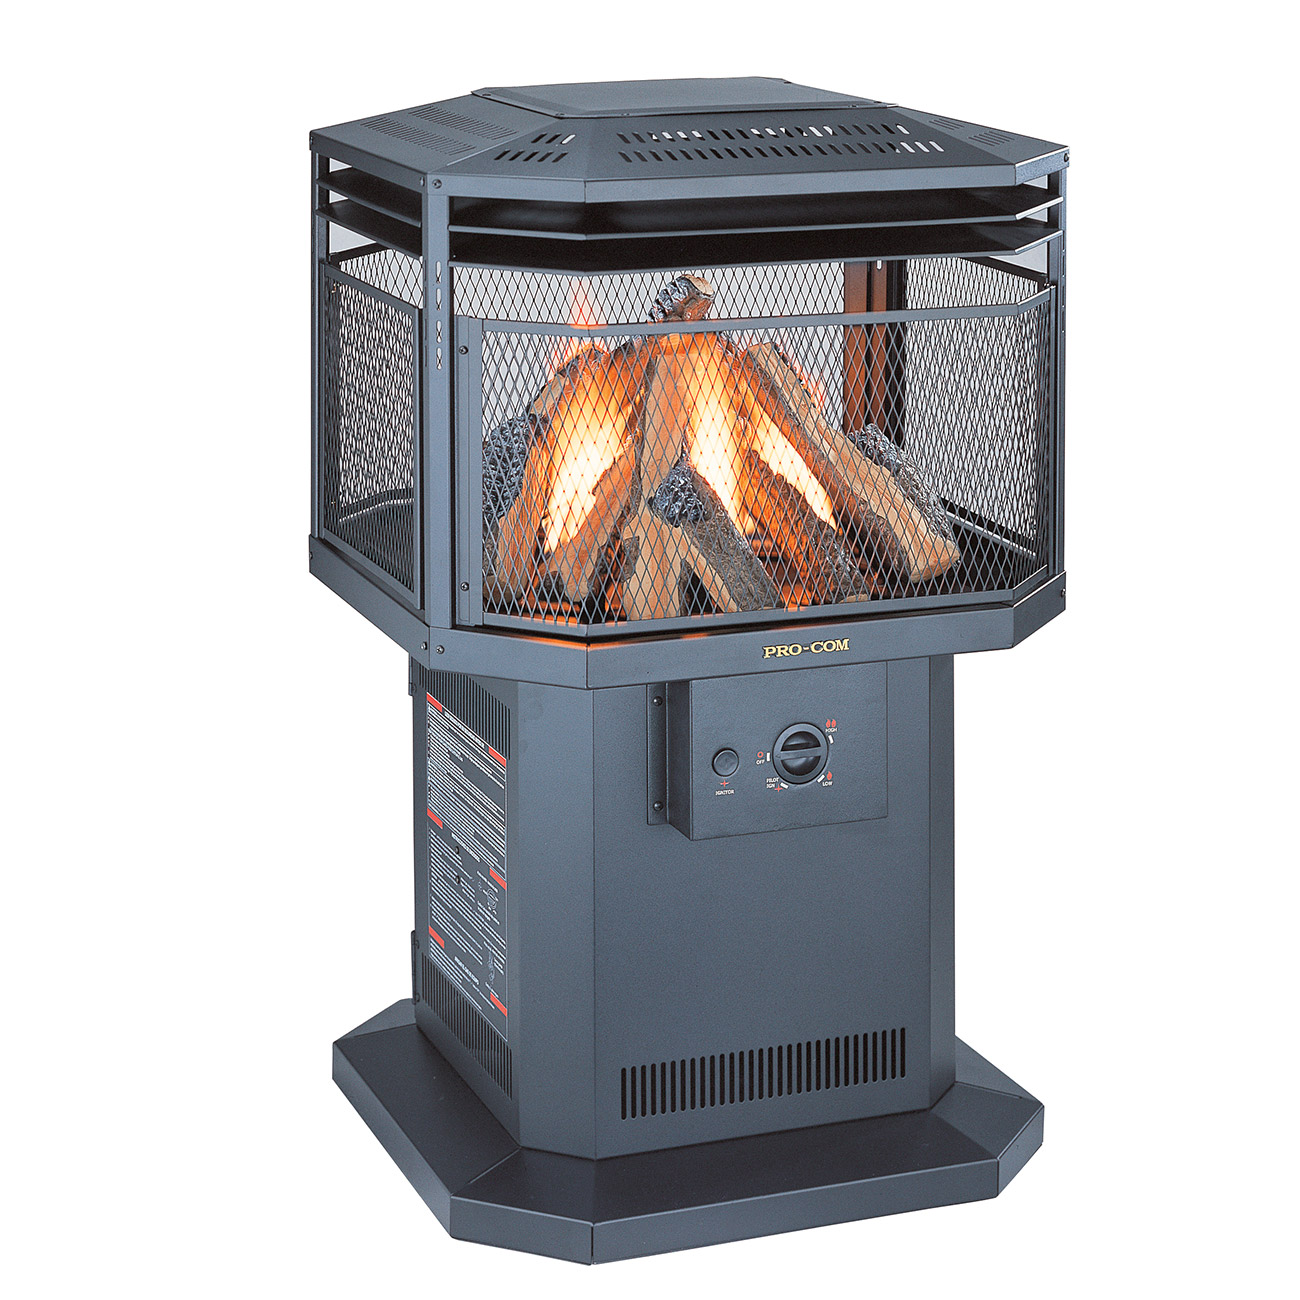 Outdoor Gas Fireplaces Outdoor Gas Fireplace Model Al500hyla Procom Heating